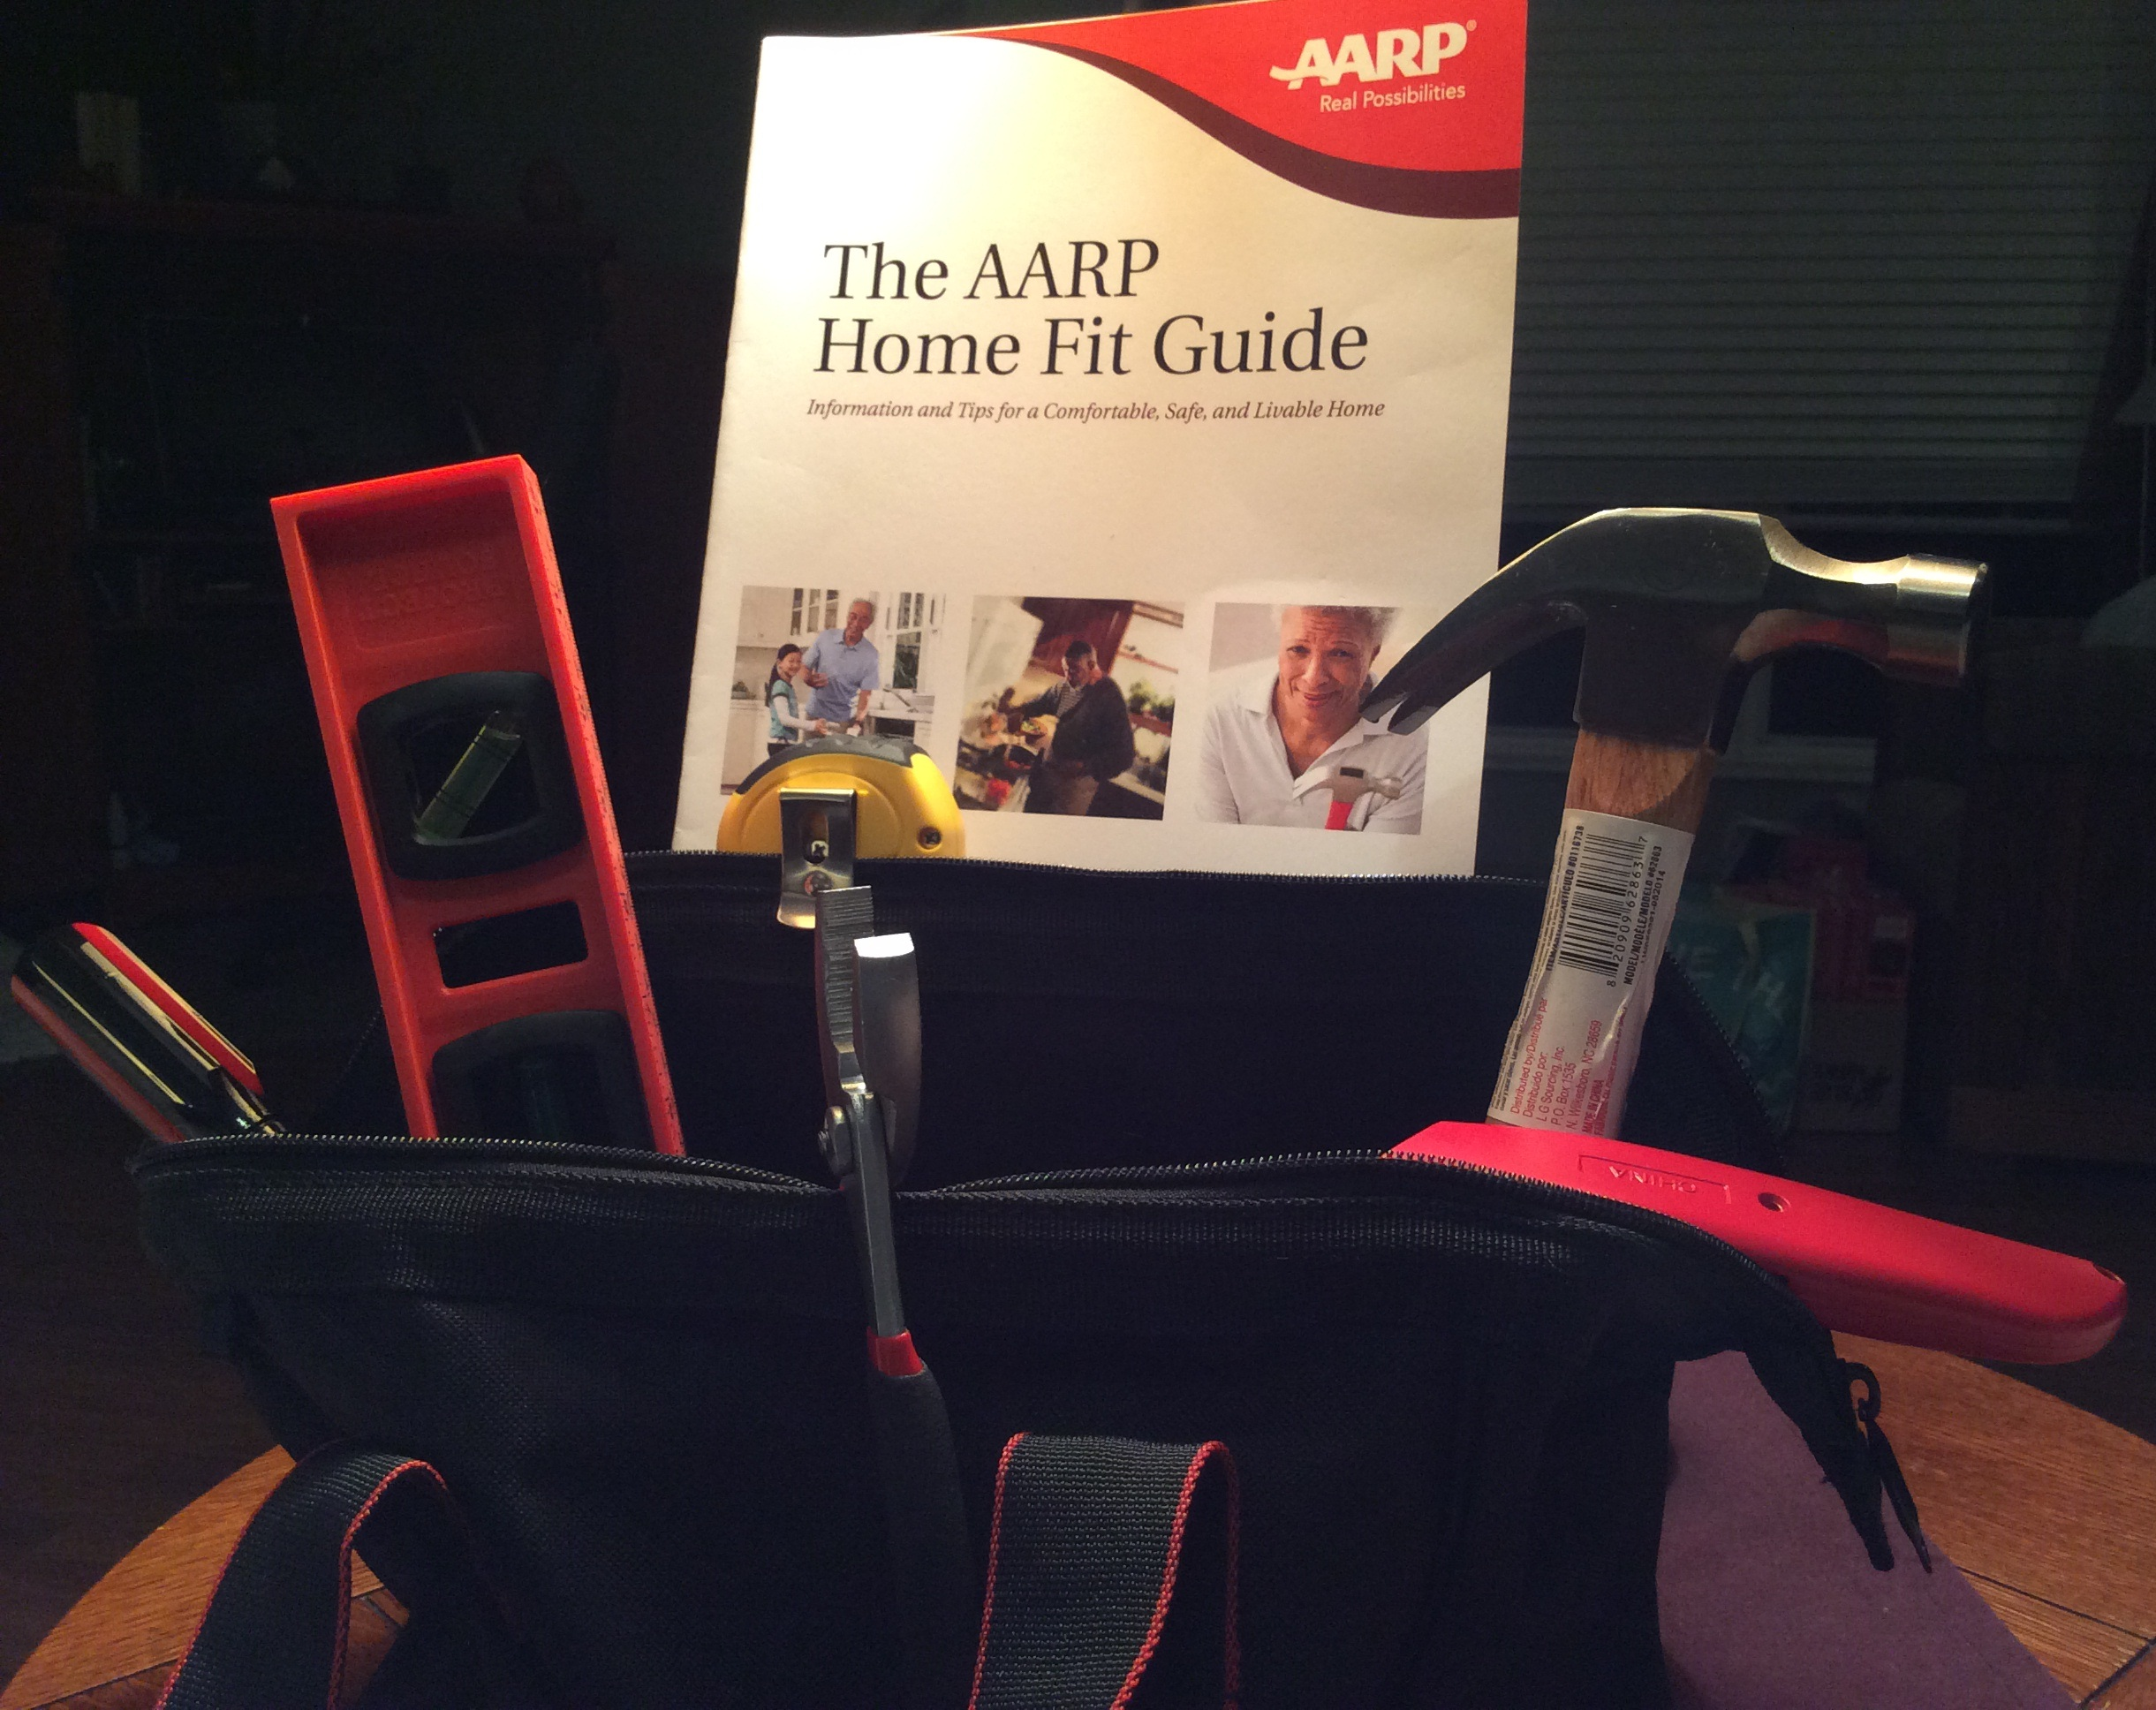 Visit the AARP Booth at the Builders Home & Remodeling Show in St. Charles